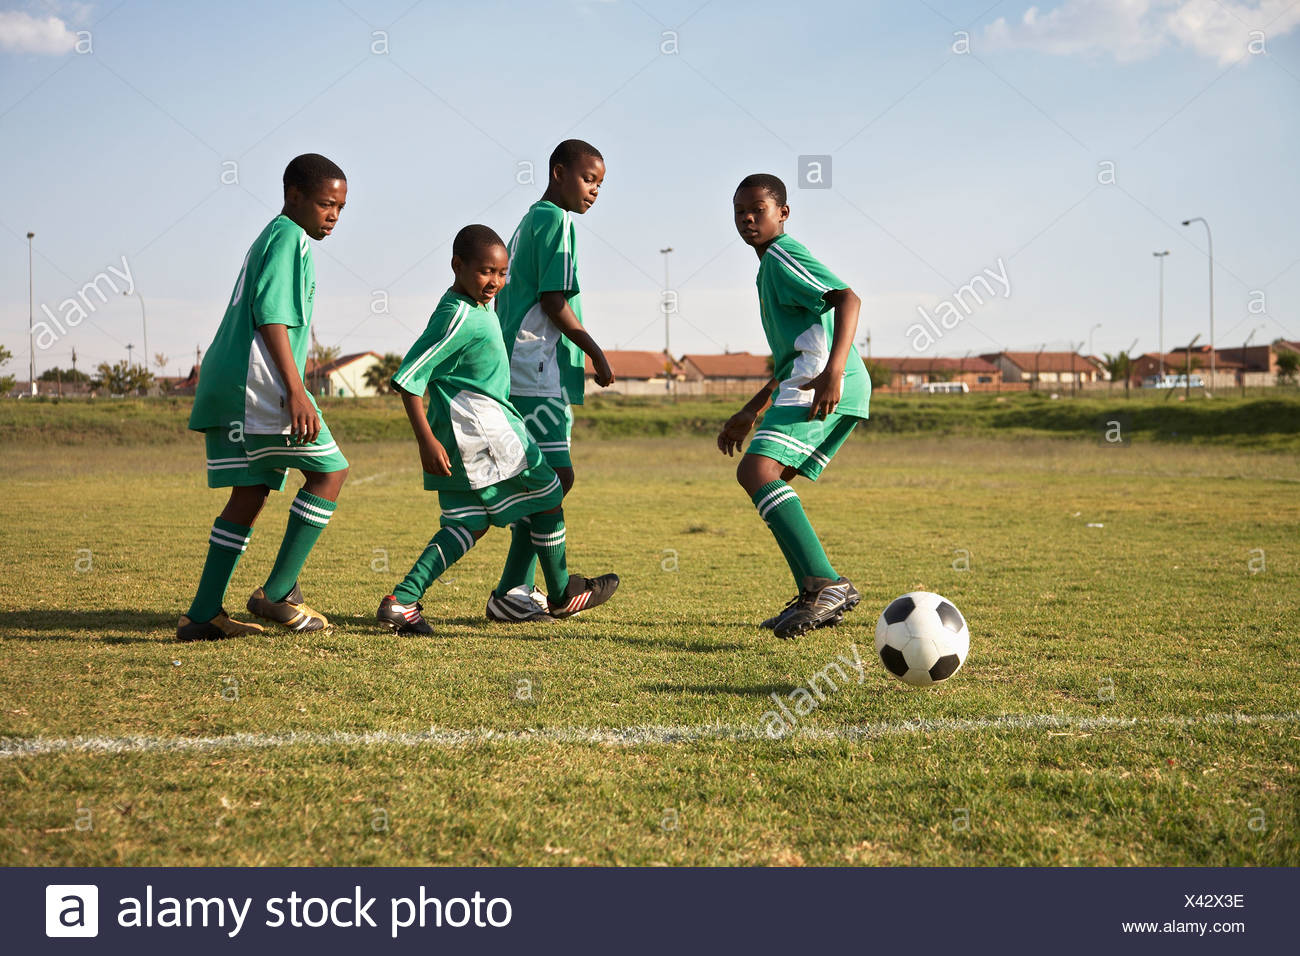 13MA-033 © Monkeyapple  aFRIKA Collection  Great Stock !  Young team playing soccer - Stock Image